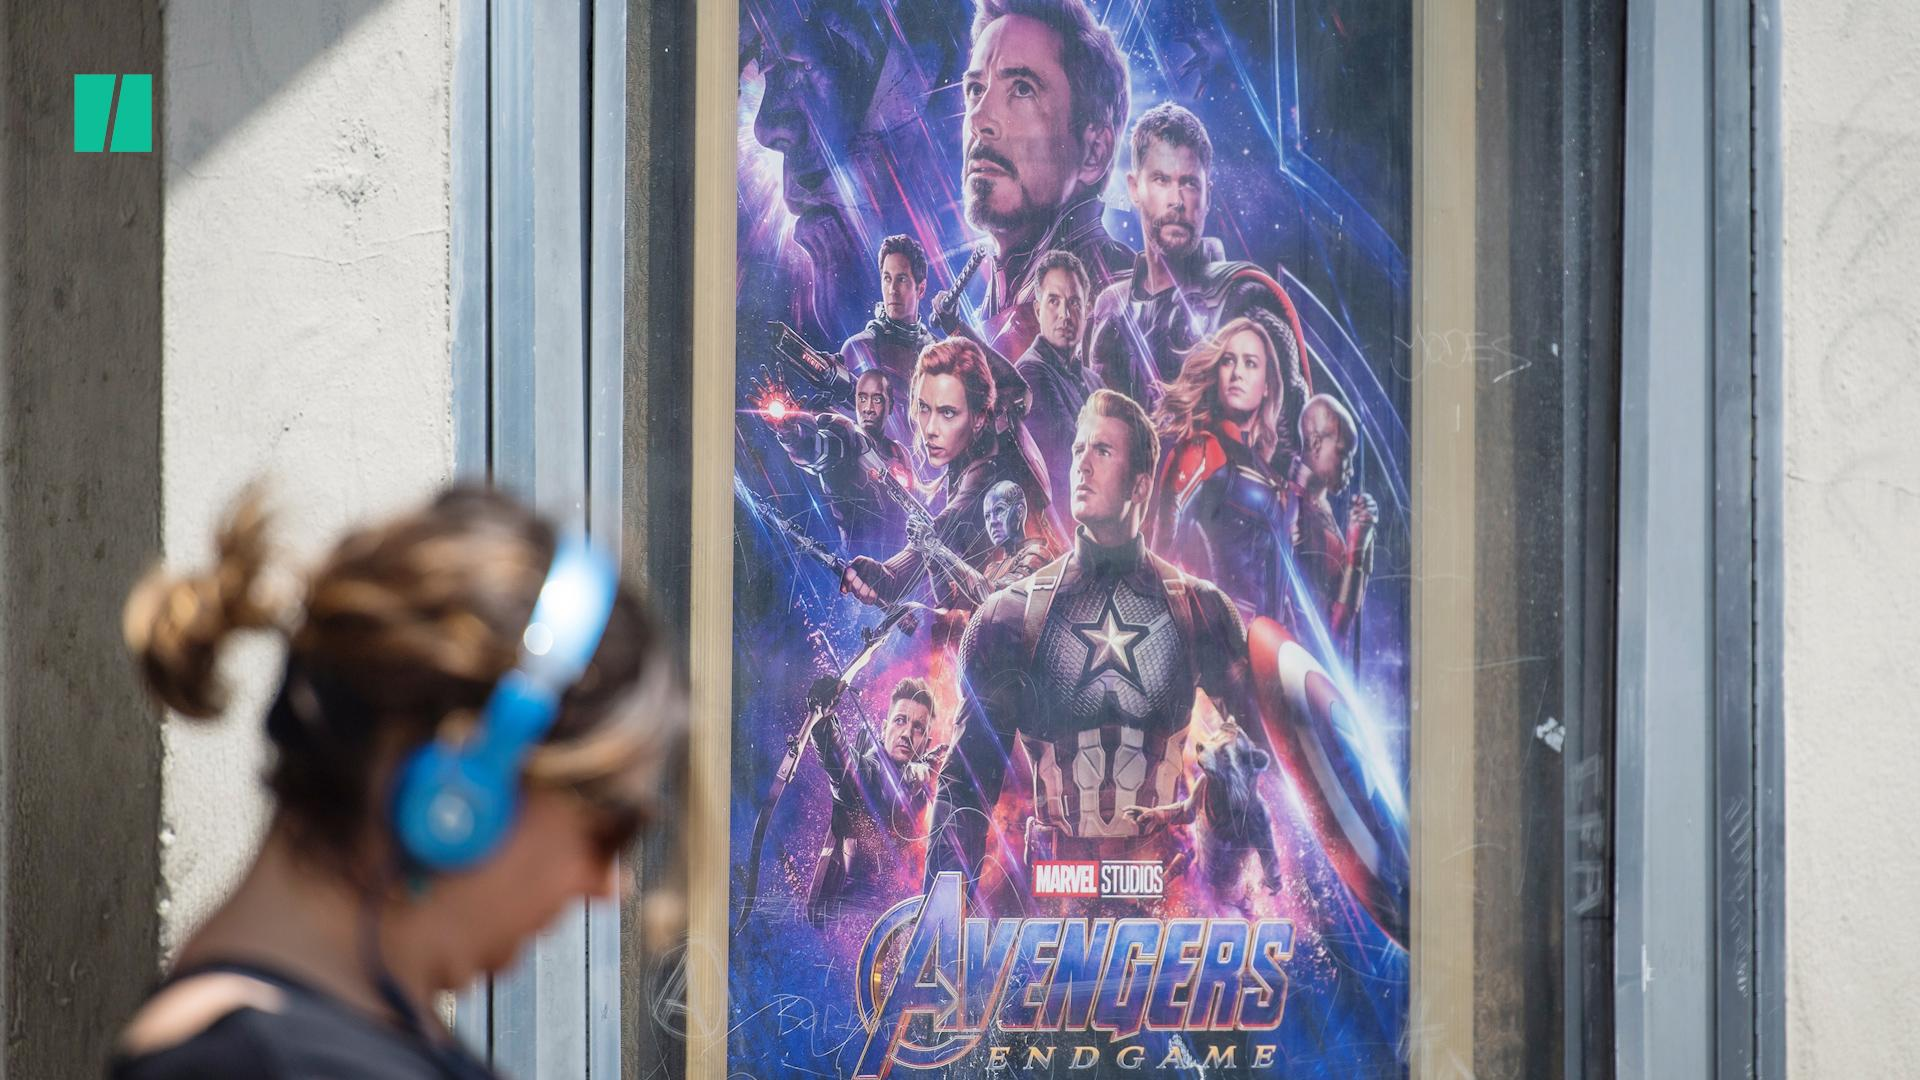 Woman Infected With Measles May Have Exposed 'Avengers: Endgame' Audience